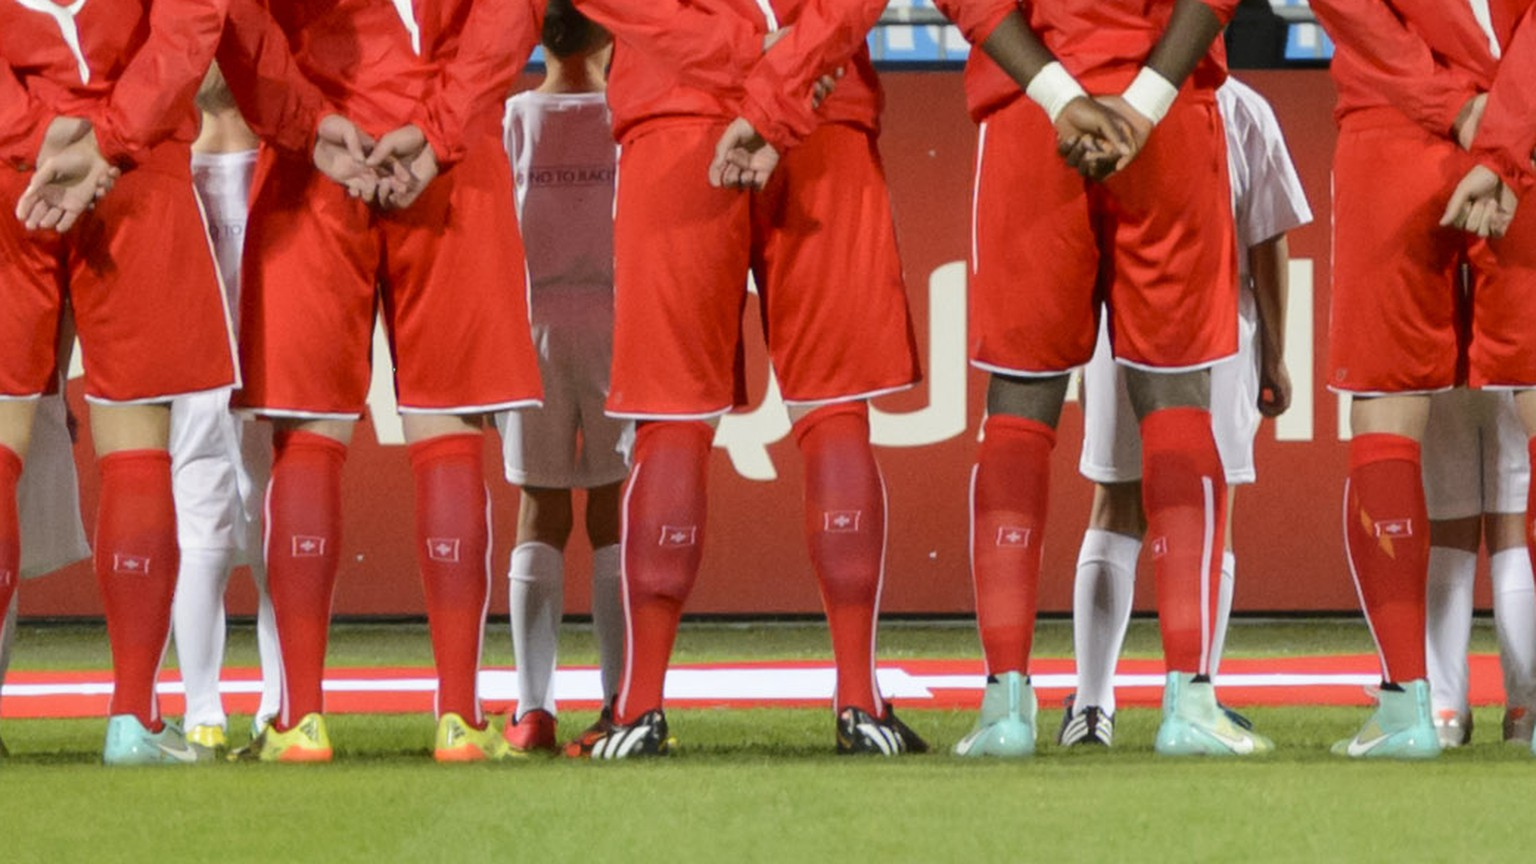 Swiss national team soccer players listen national hymne before the UEFA EURO 2016 qualifying soccer match Slovenia against Switzerland at the Ljudski vrt Stadium in Maribor, Slovenia, Thursday, October 9, 2014. (KEYSTONE/Laurent Gillieron)